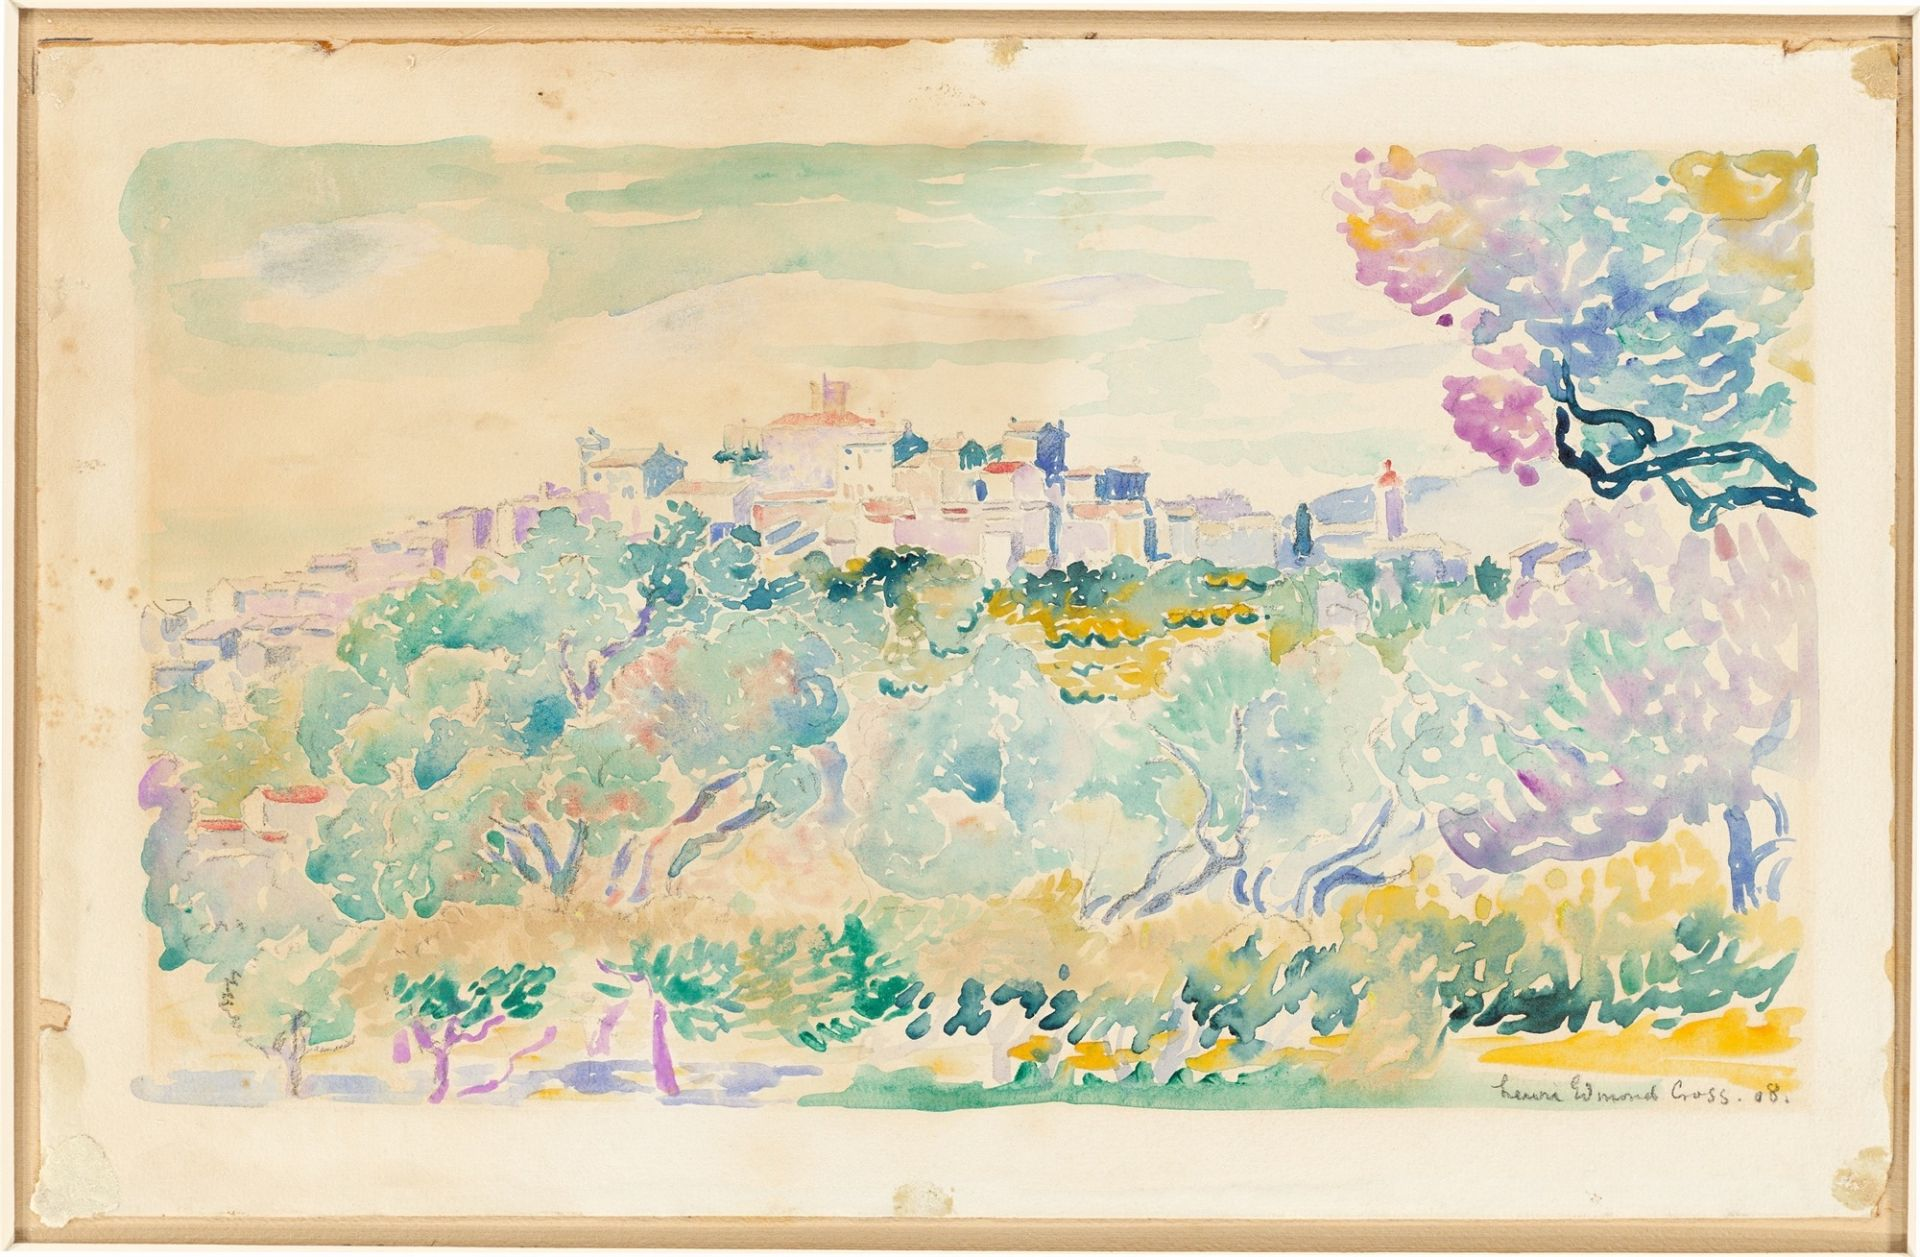 Henri Edmond Cross. Southern landscape with olive grove and small town on a hill. 1908 - Image 2 of 3